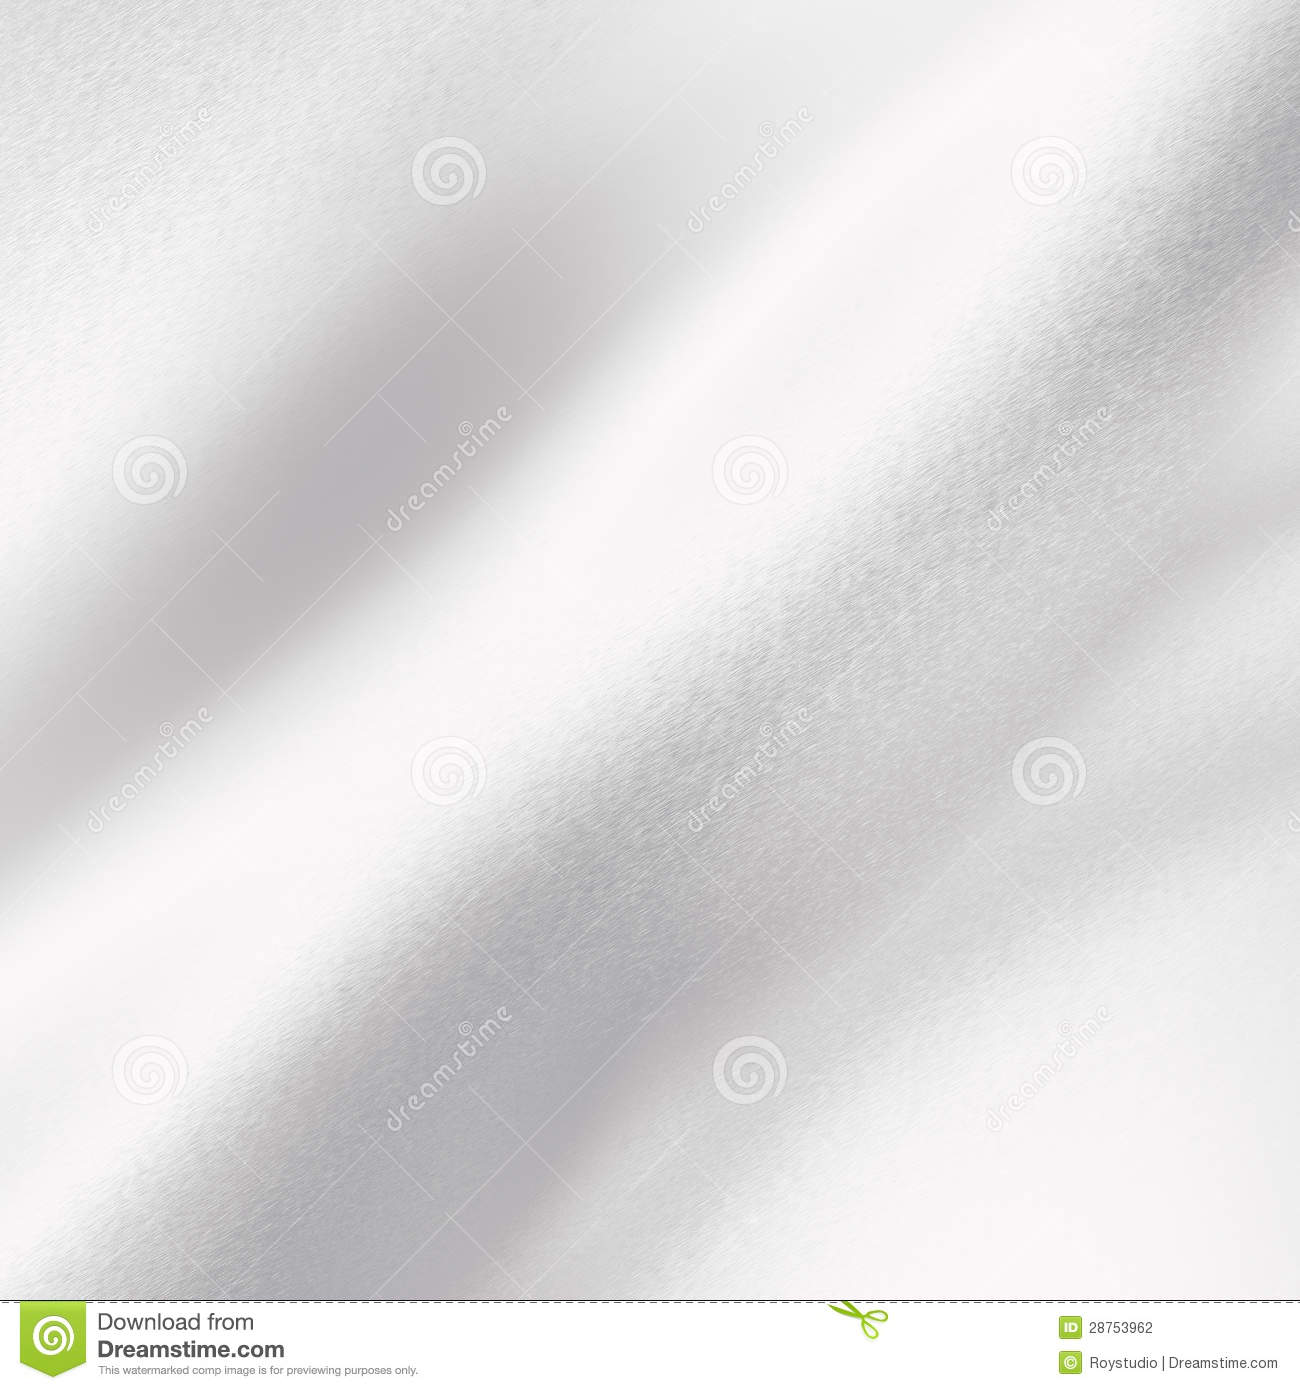 Black and white metal background texture smooth chrome metal plate.